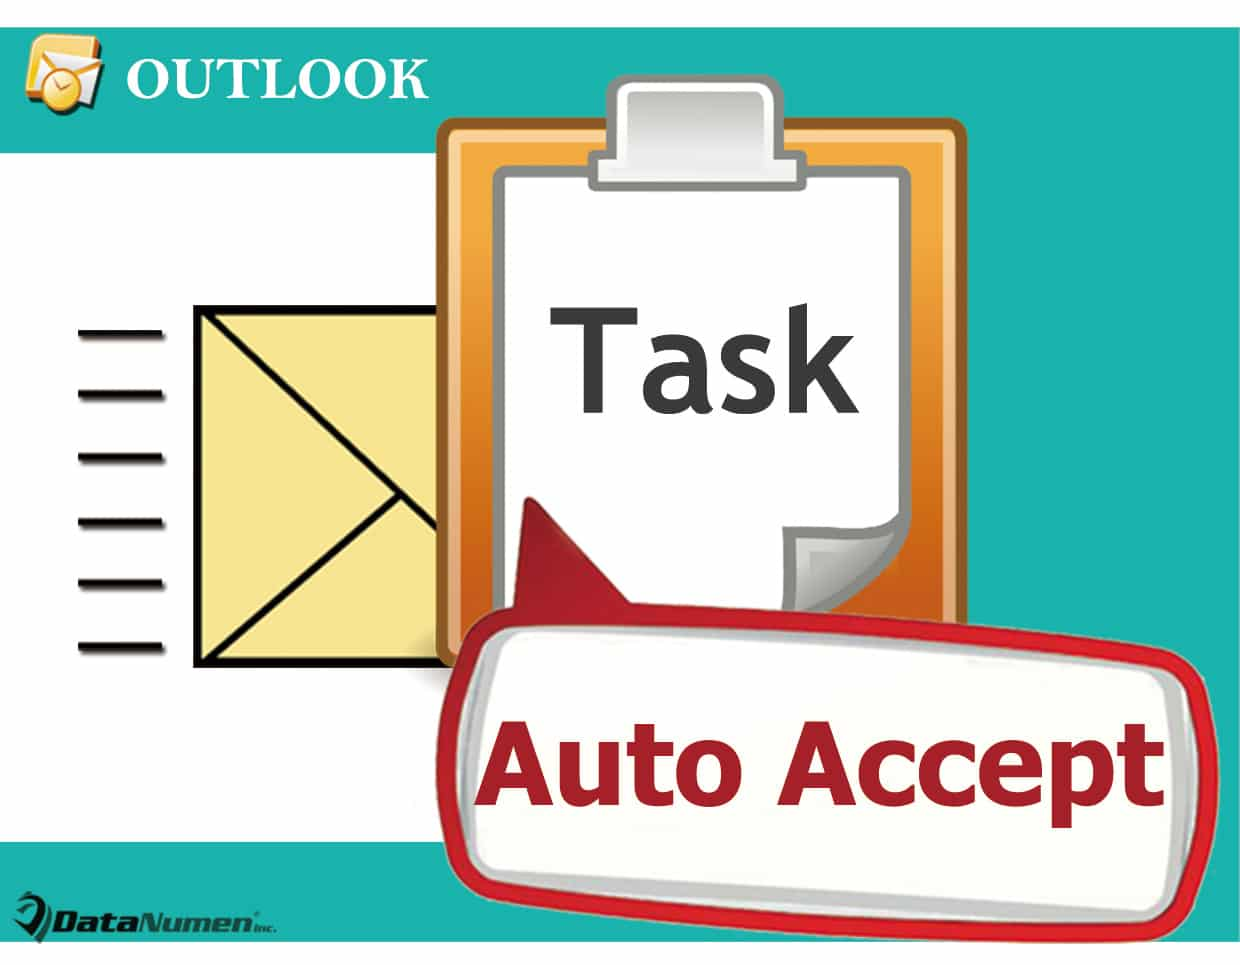 Auto Accept All Incoming Task Requests in Your Outlook